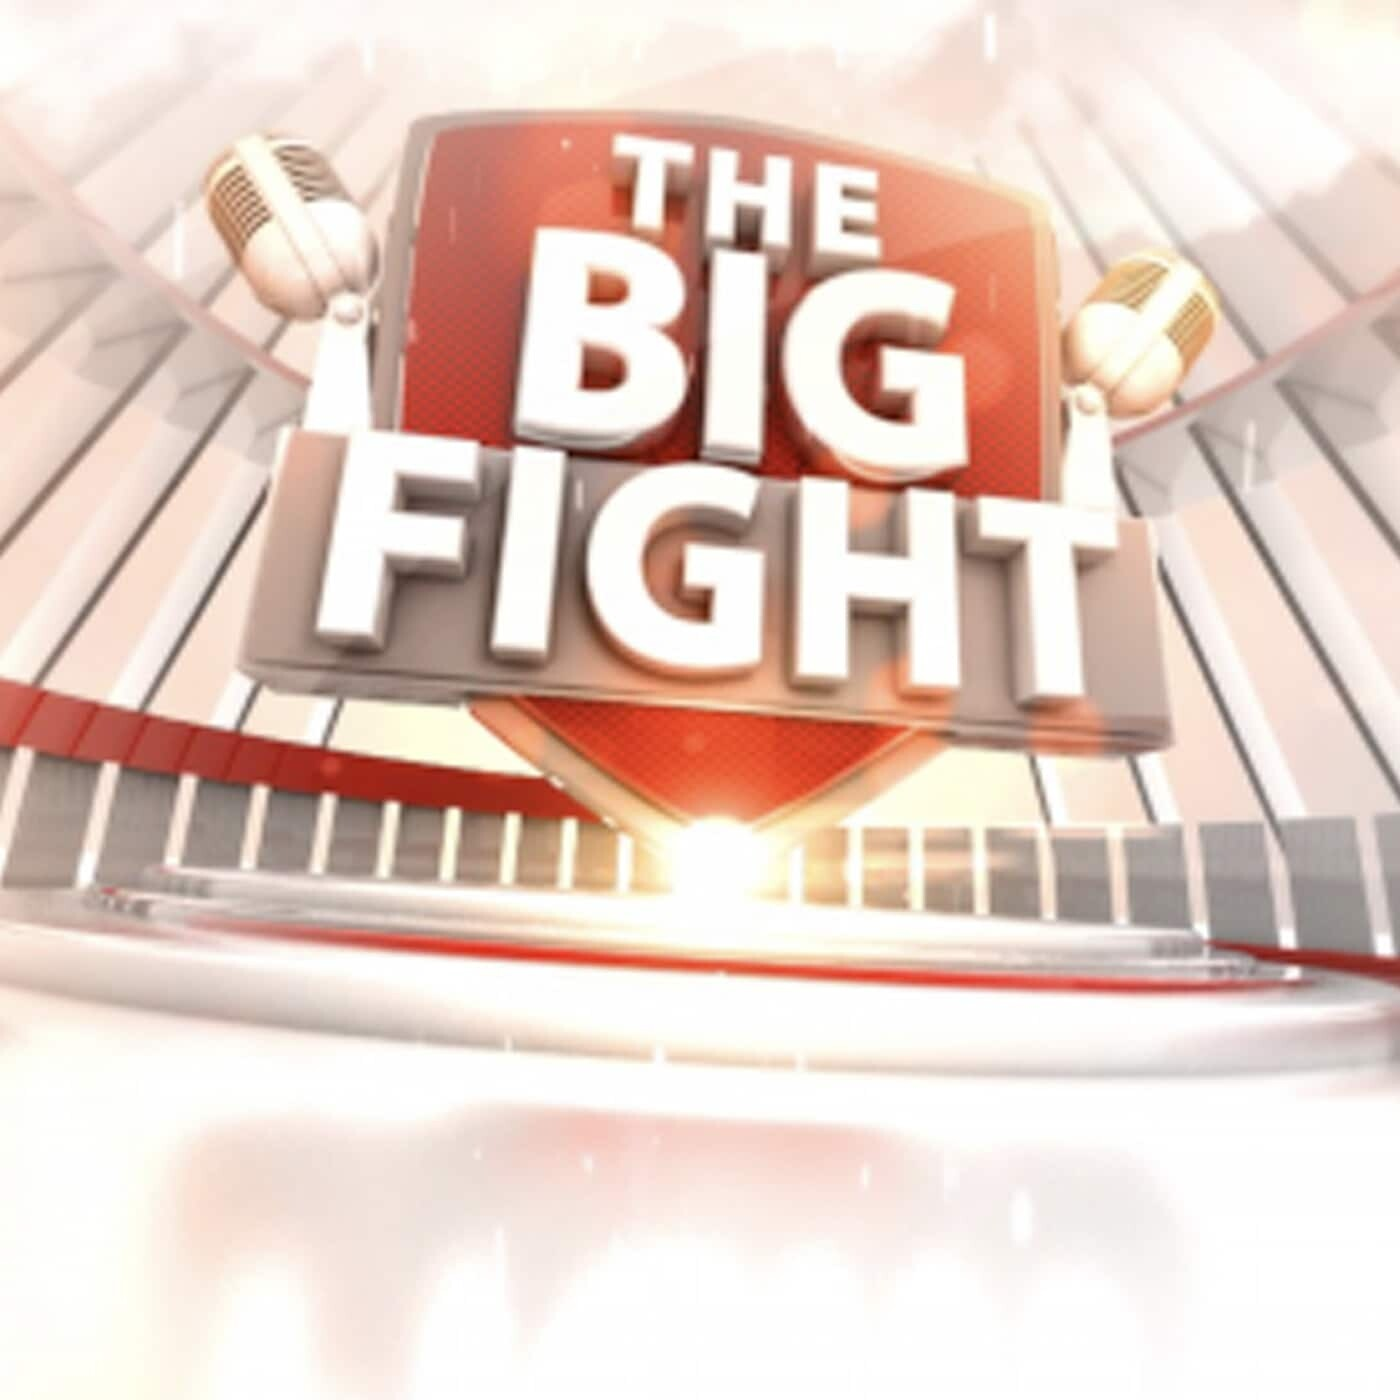 The Big Fight: Do High Marks Ensure Success In Life?